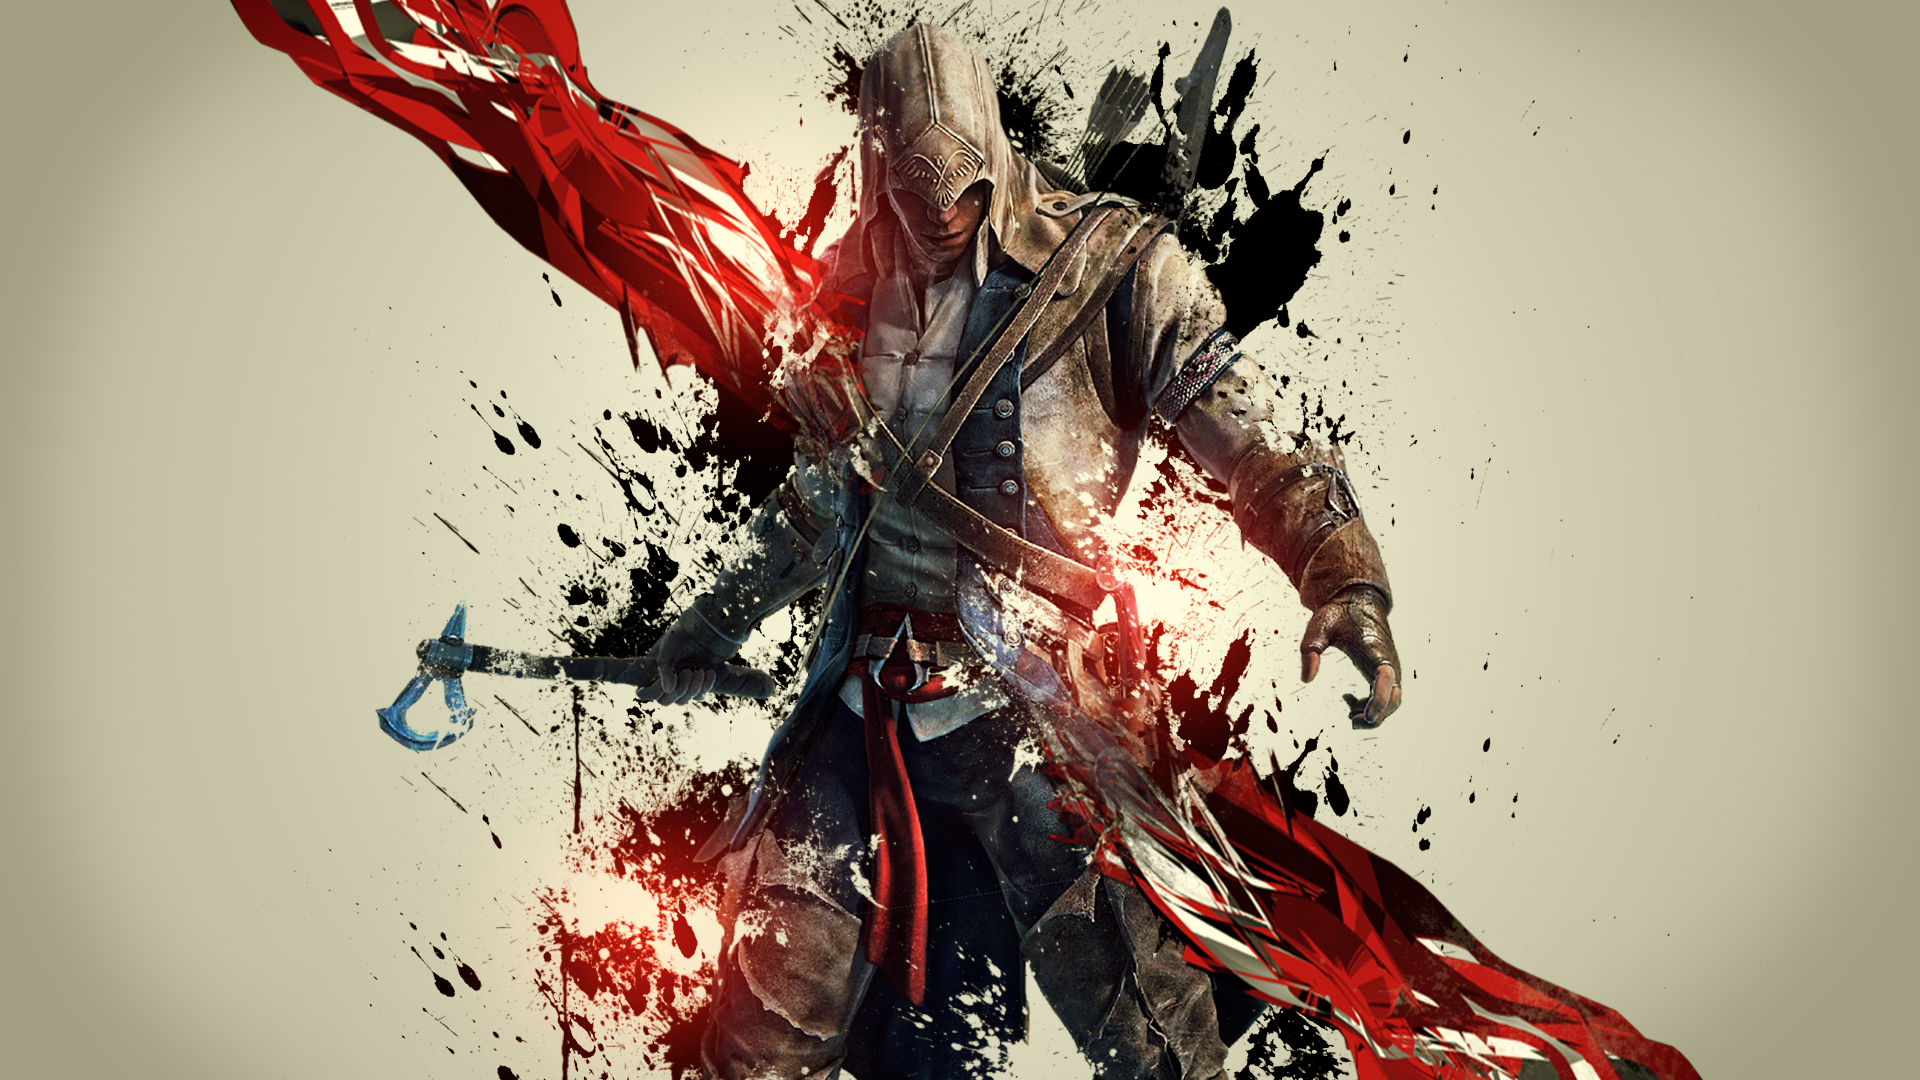 assassins creed iii hd wallpaper | background image | 1920x1080 | id